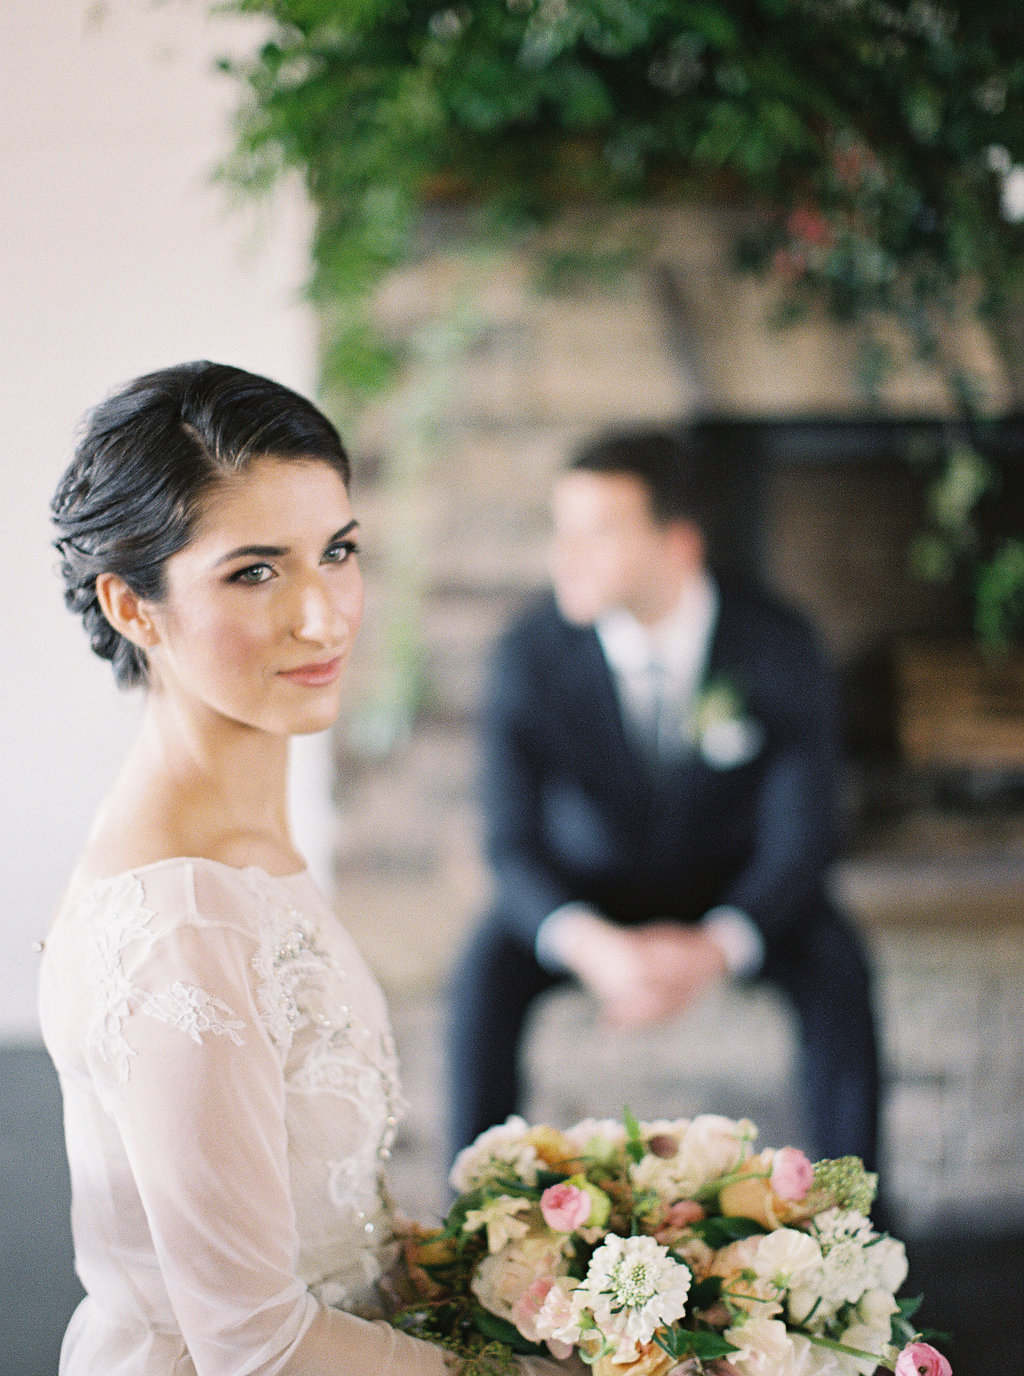 Modern Farm Romance  - Elegant Neutral Indoor Wedding Iinspiration | Featured in Wedding Sparrow